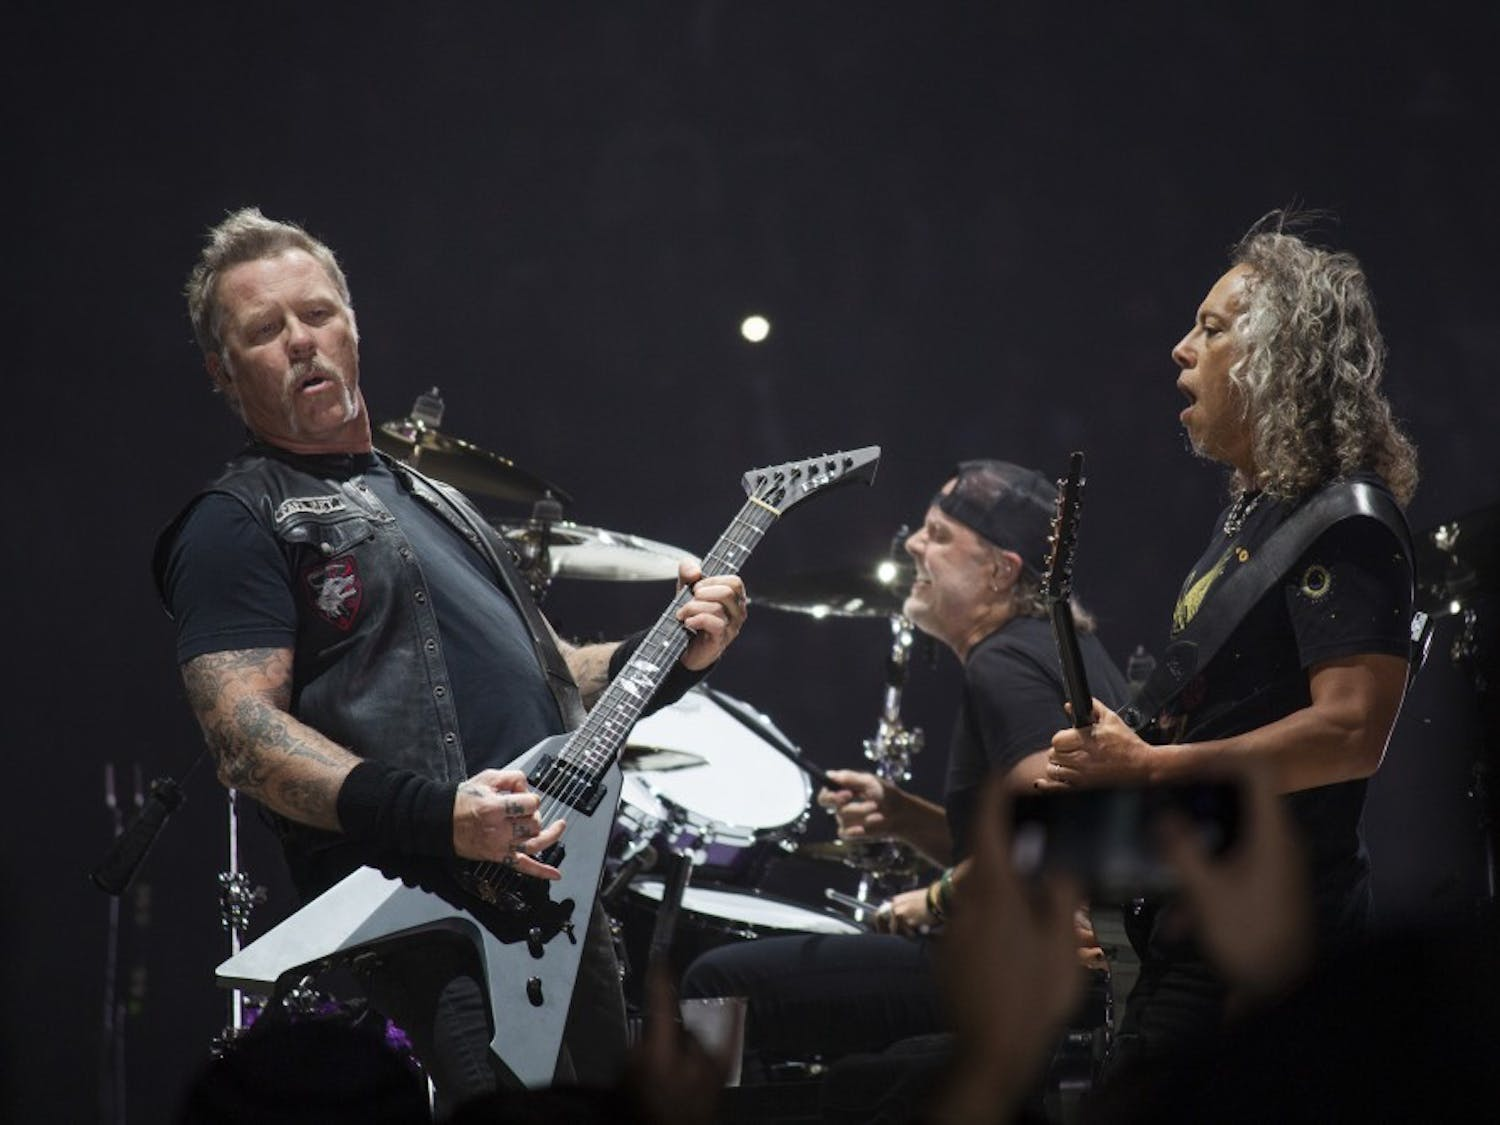 """Metallica found a home at the KeyBank Center on Saturday night. Hardcore fans and newcomers rejoiced over a nearly three-hour set featuring cuts from """"Hardwired...To Self Destruct"""" as well as concert staples like """"One"""" and """"Seek and Destroy."""""""